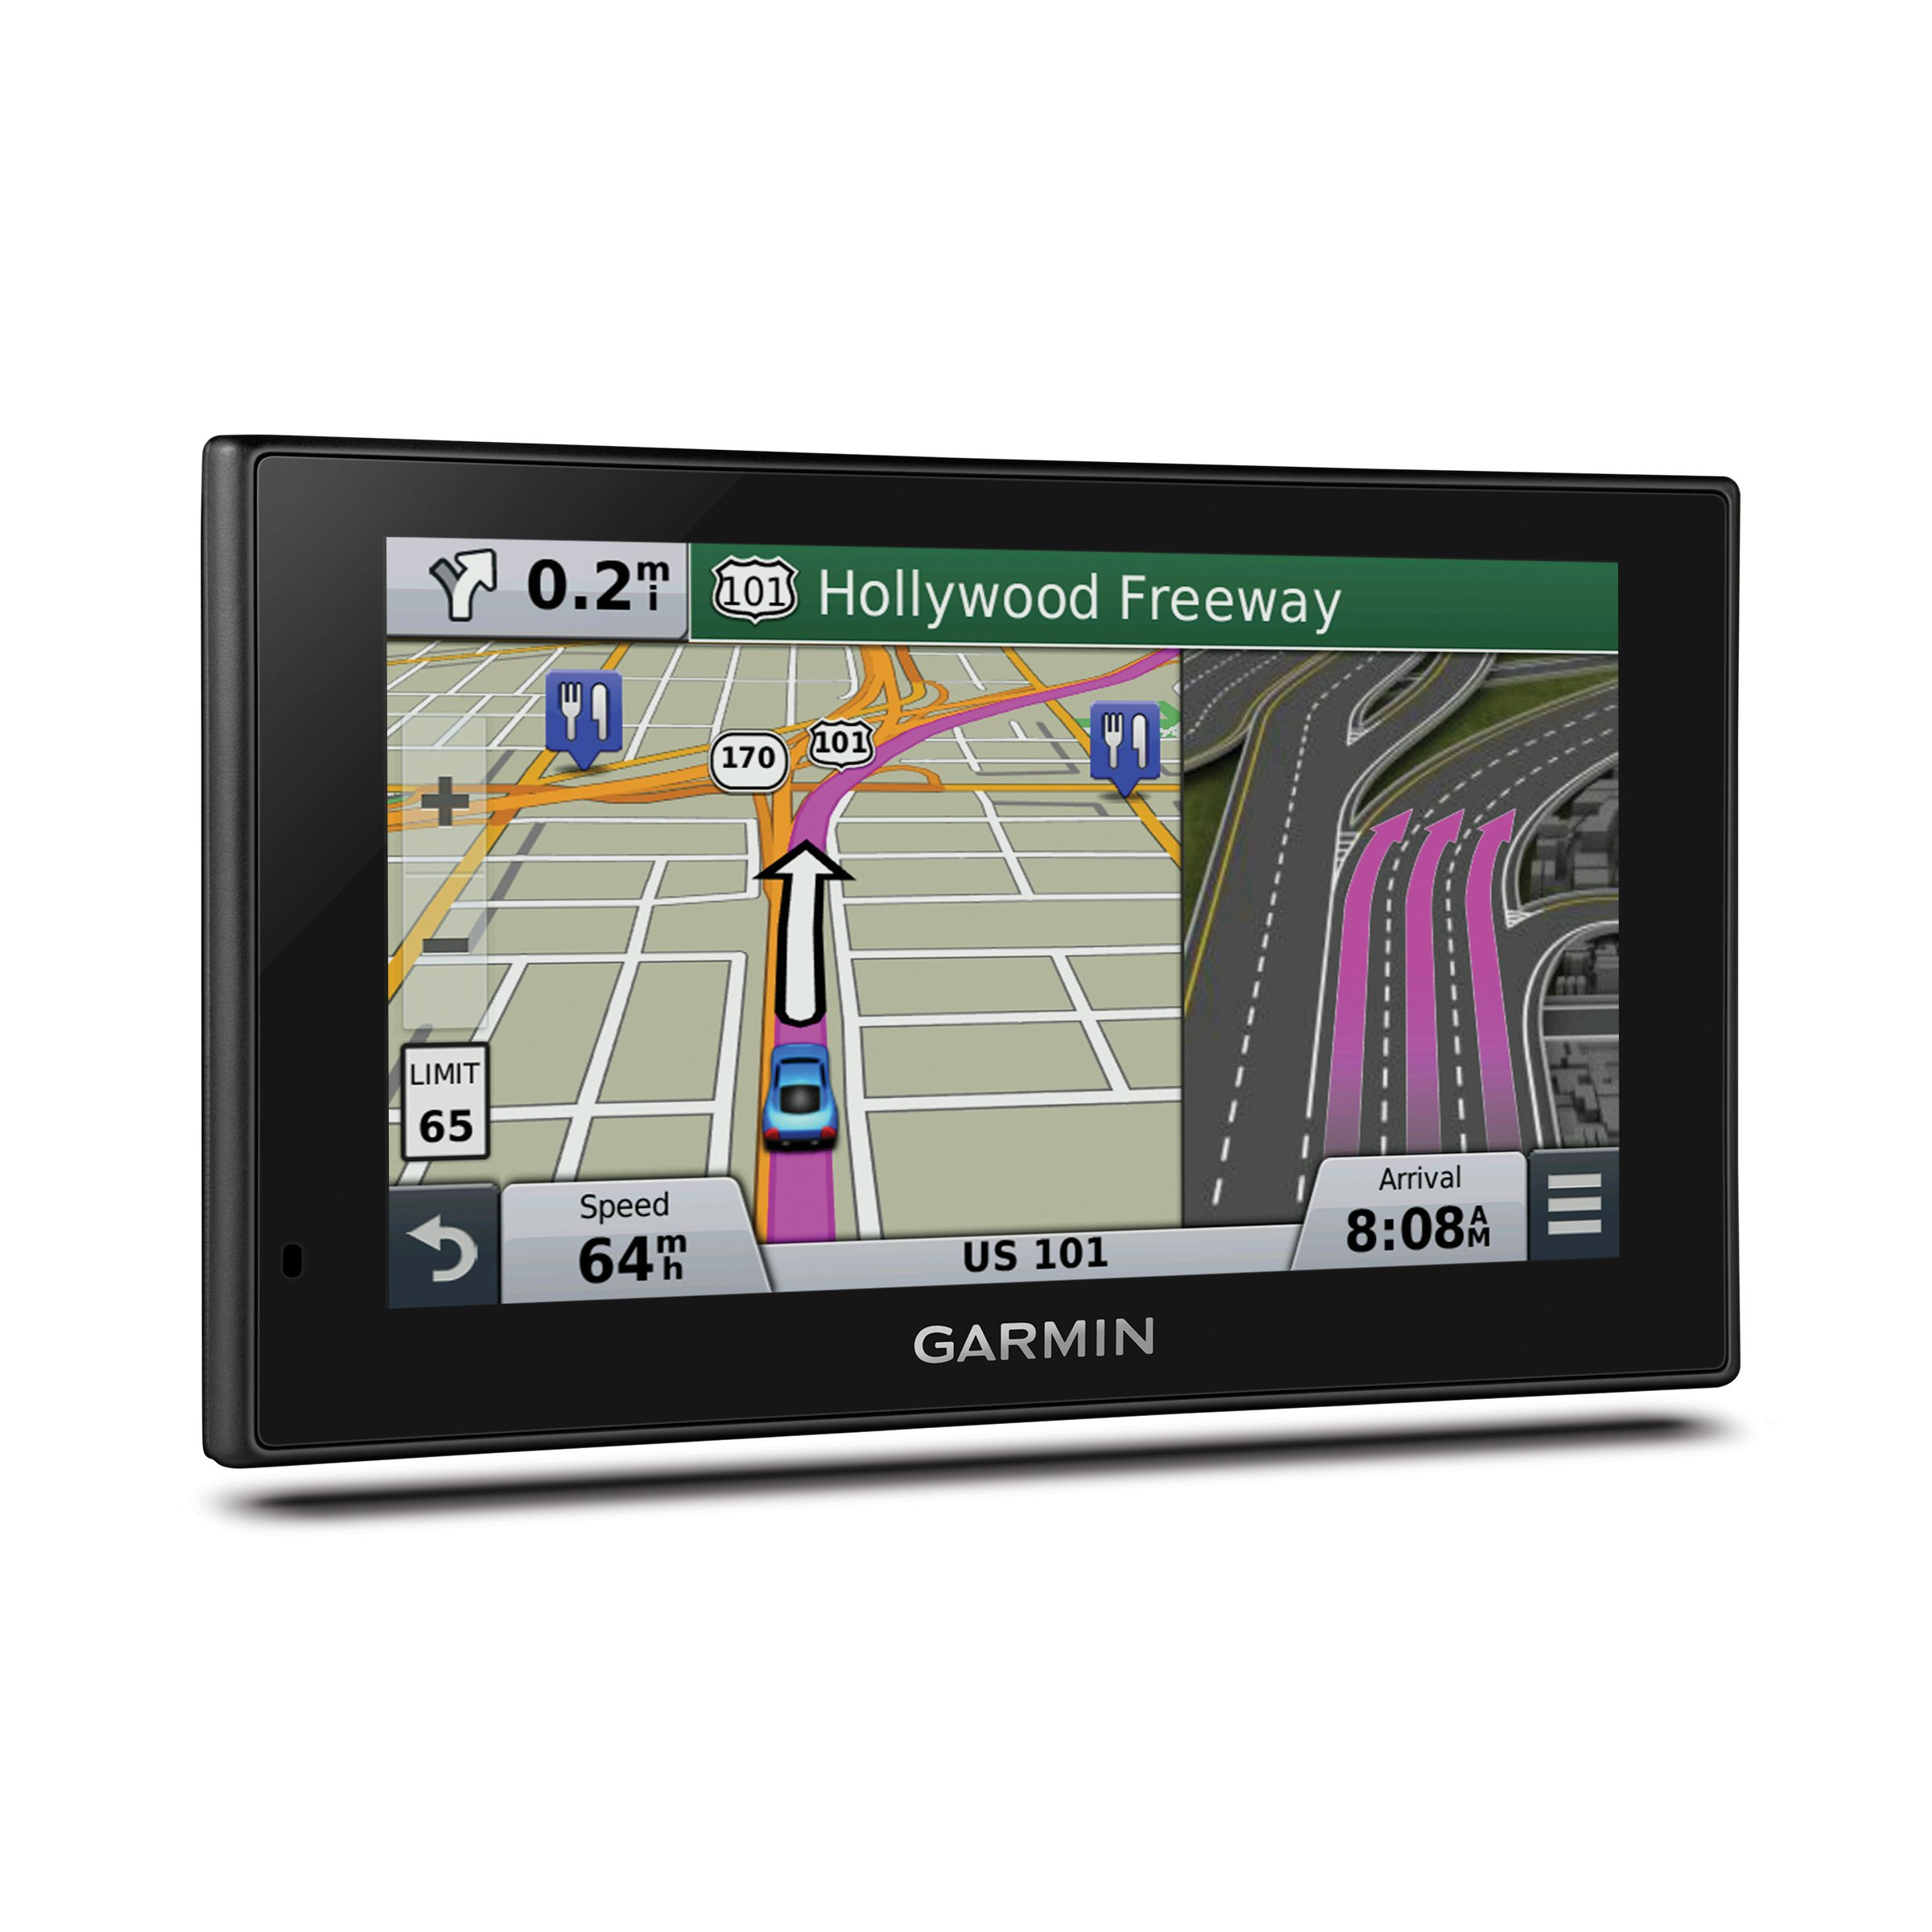 garmin streetpilot iii gps wiring diagram wiring librarygarmin nuvi 2589lmt north america with lifetime map updates and traffic avoidance product image